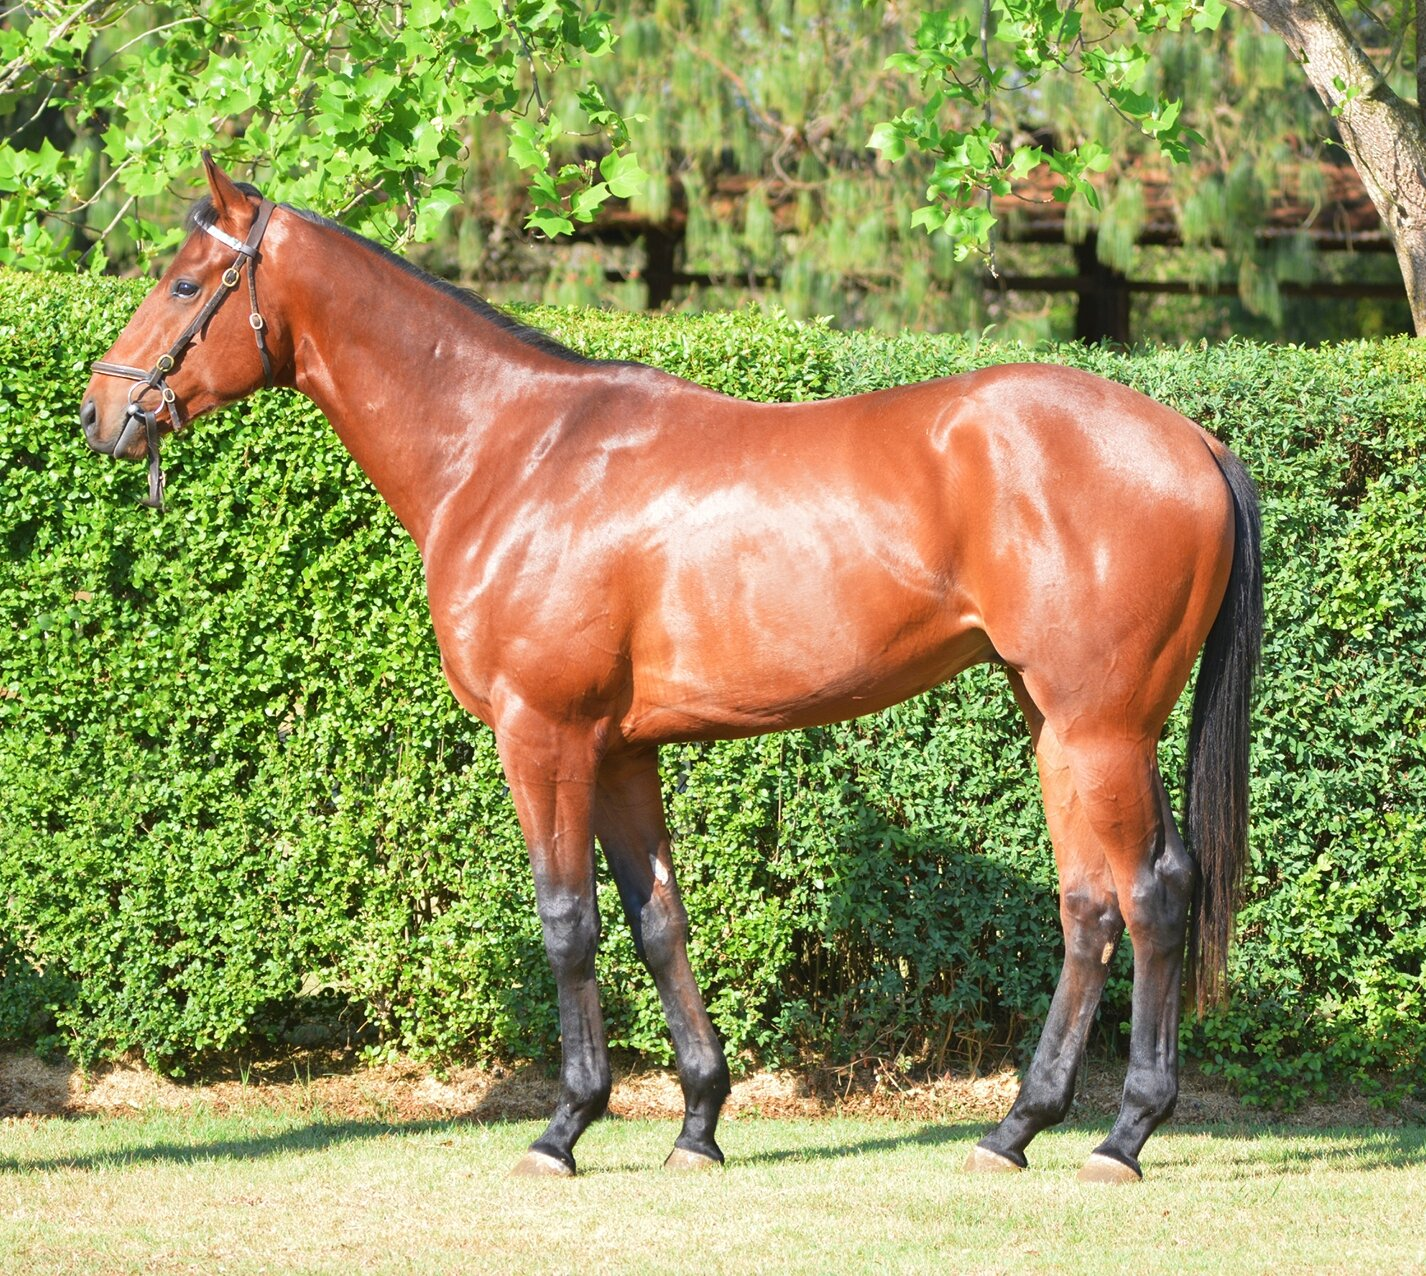 RTR 2019 Lot 28 The Kop (Visionaire x Dignify)